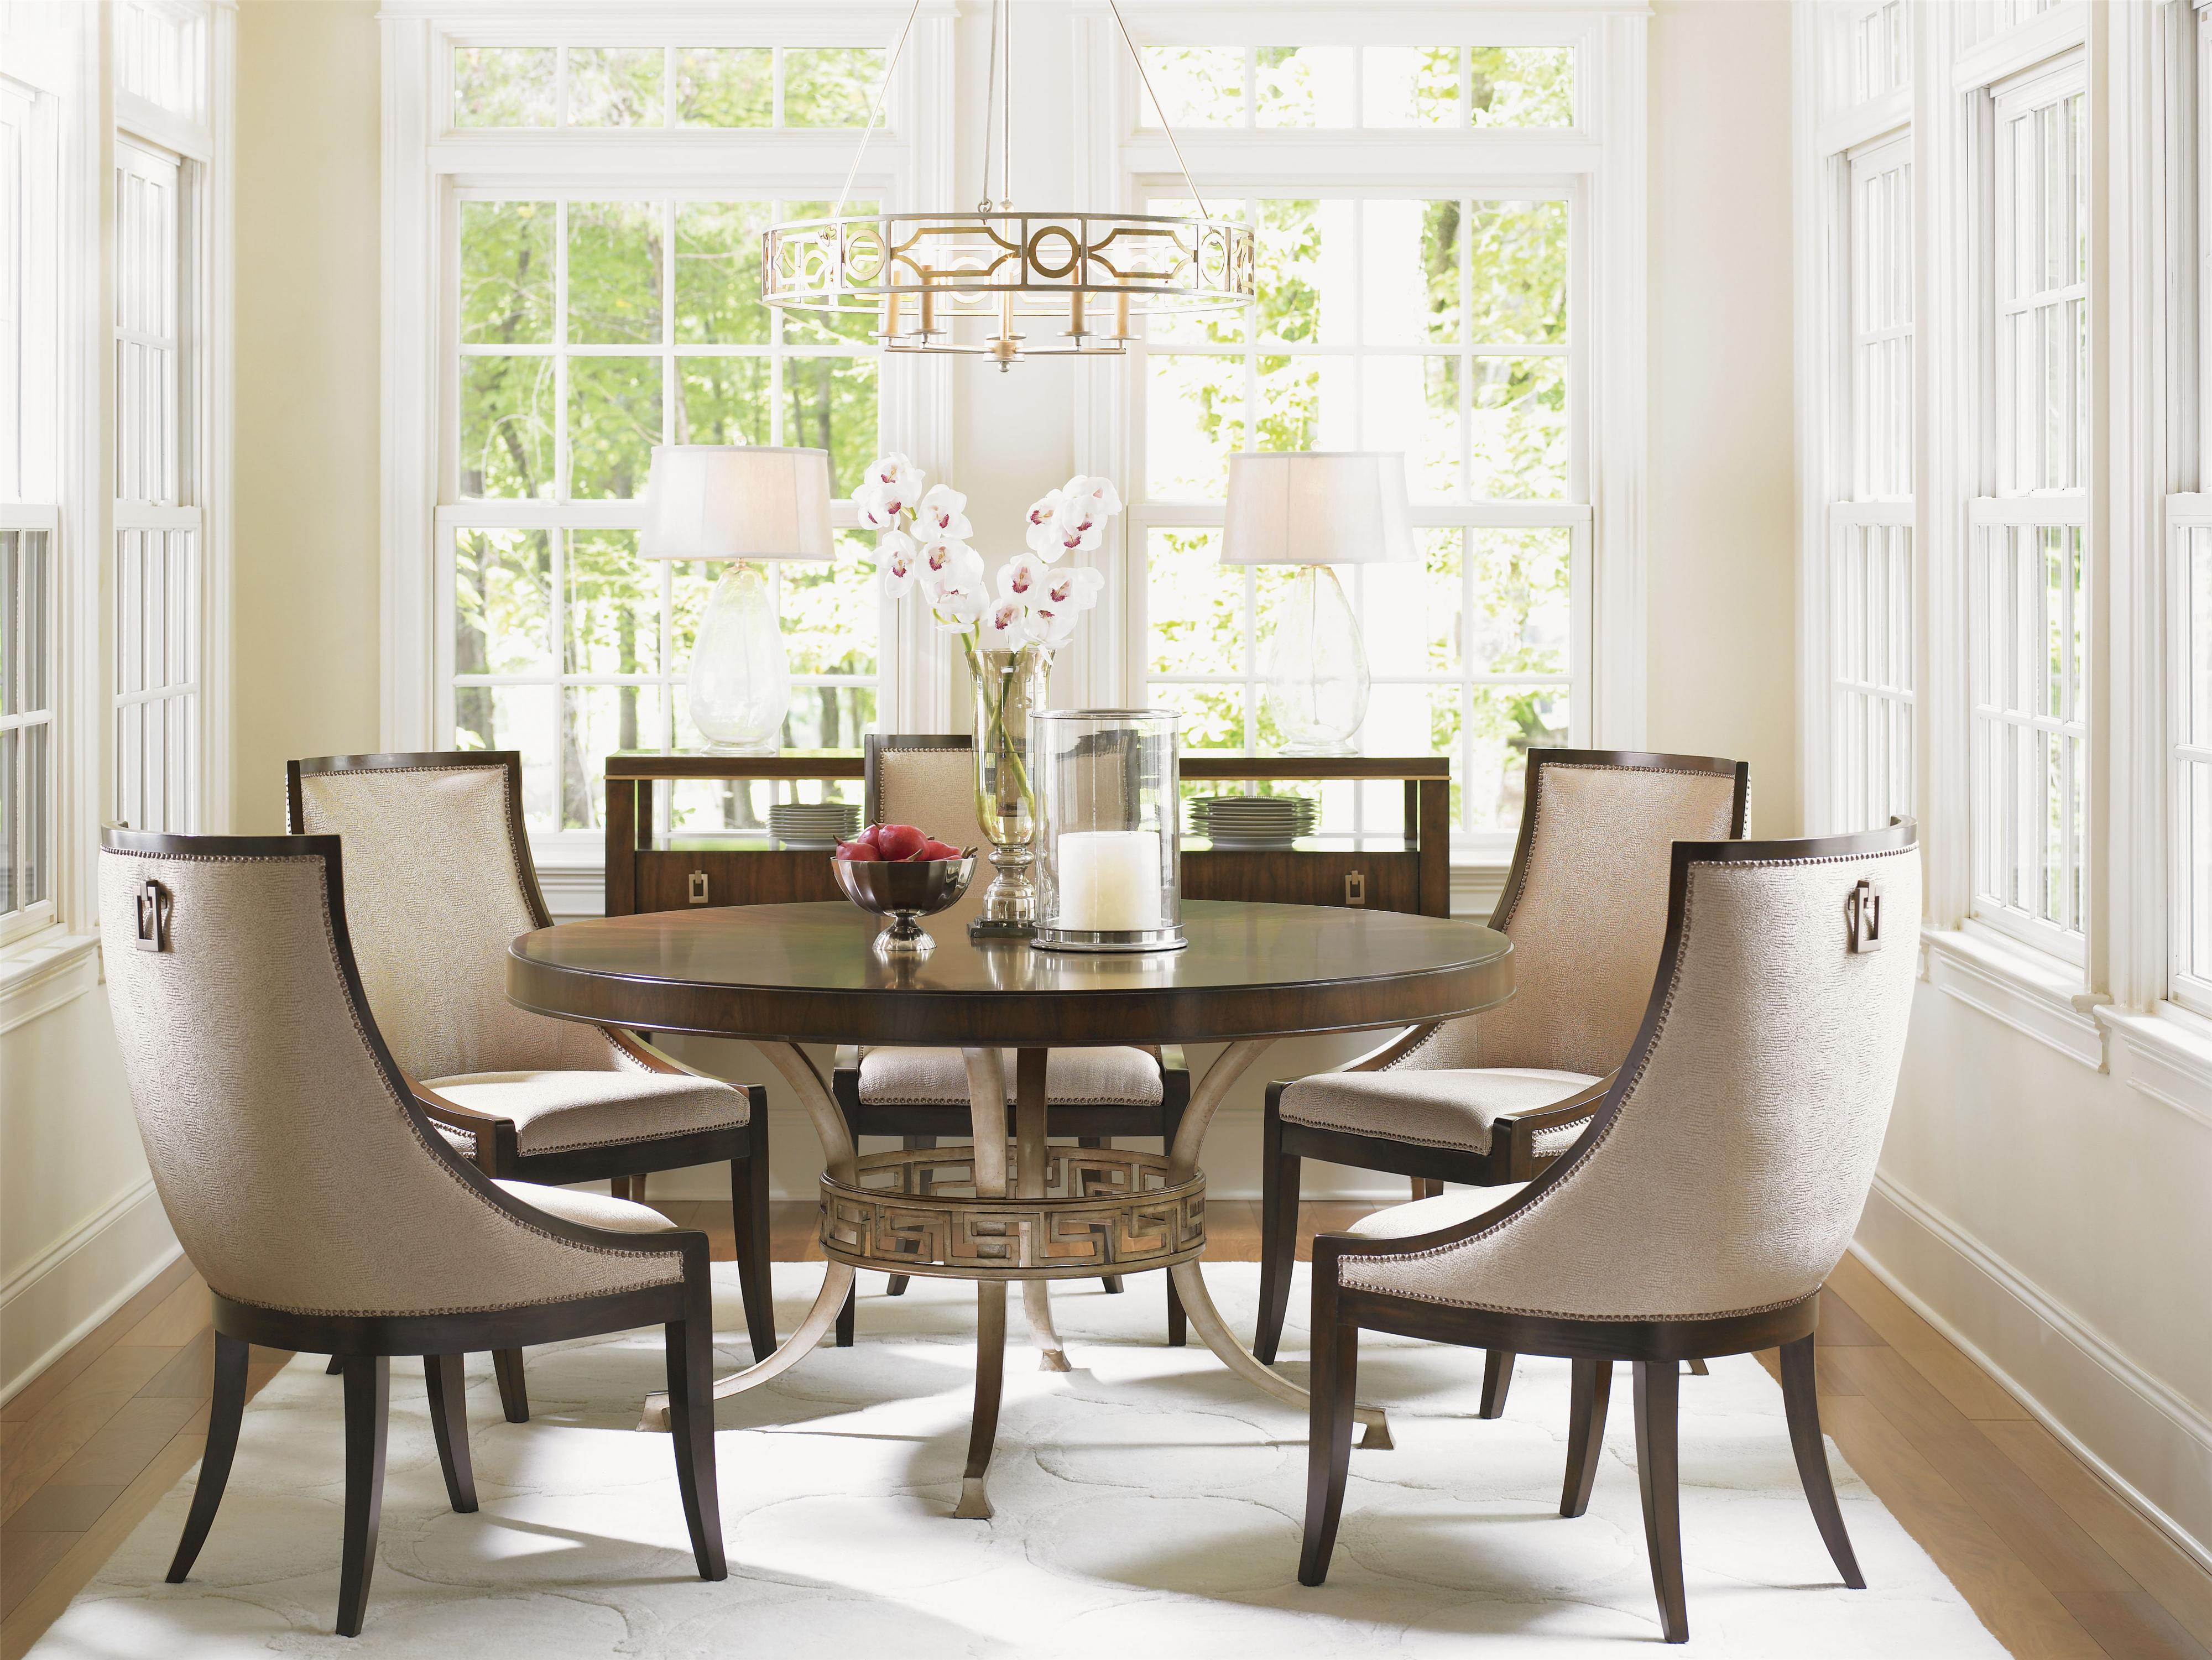 Tower Place 7 Piece Formal Dining Room Group by Lexington at Johnny Janosik